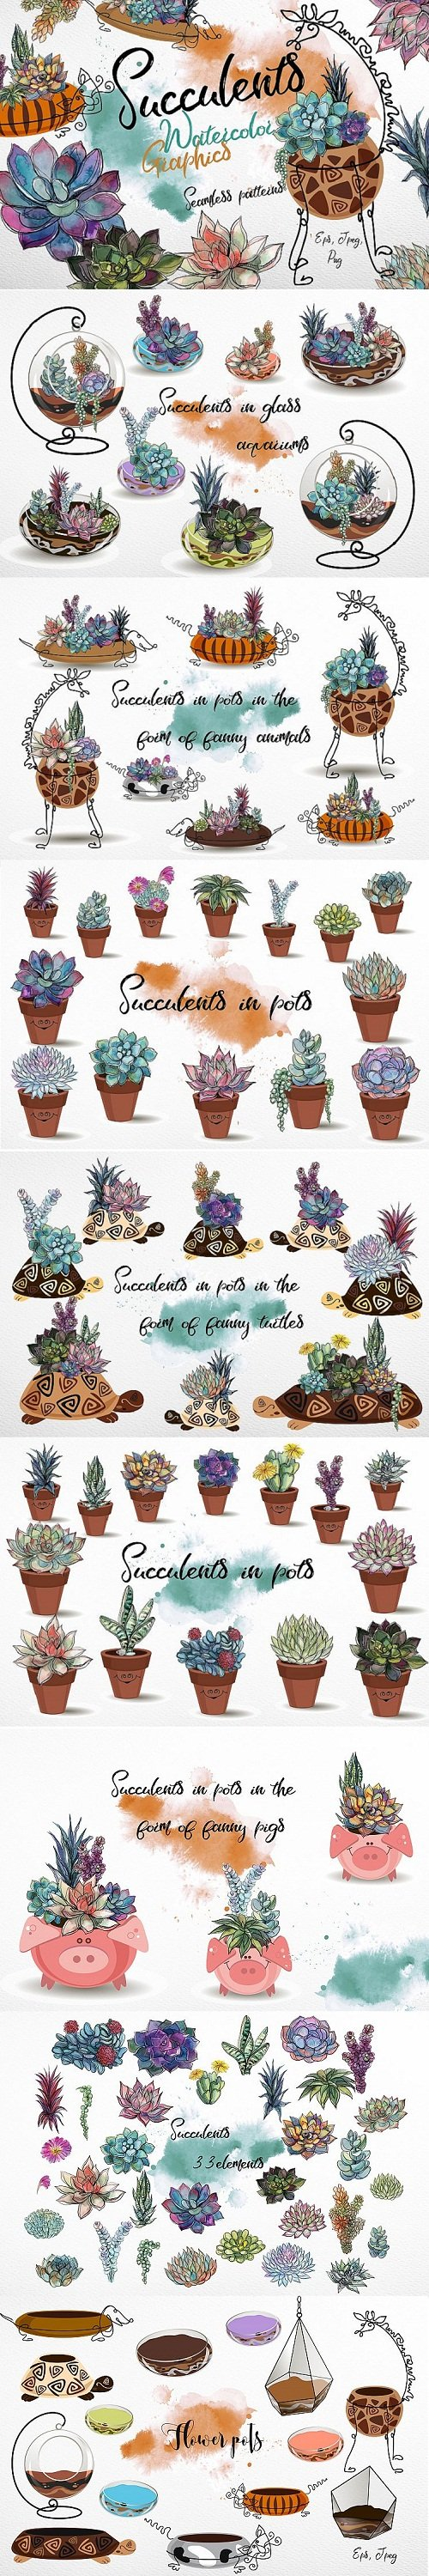 Succulents. Watercolor. Graphics - 173334